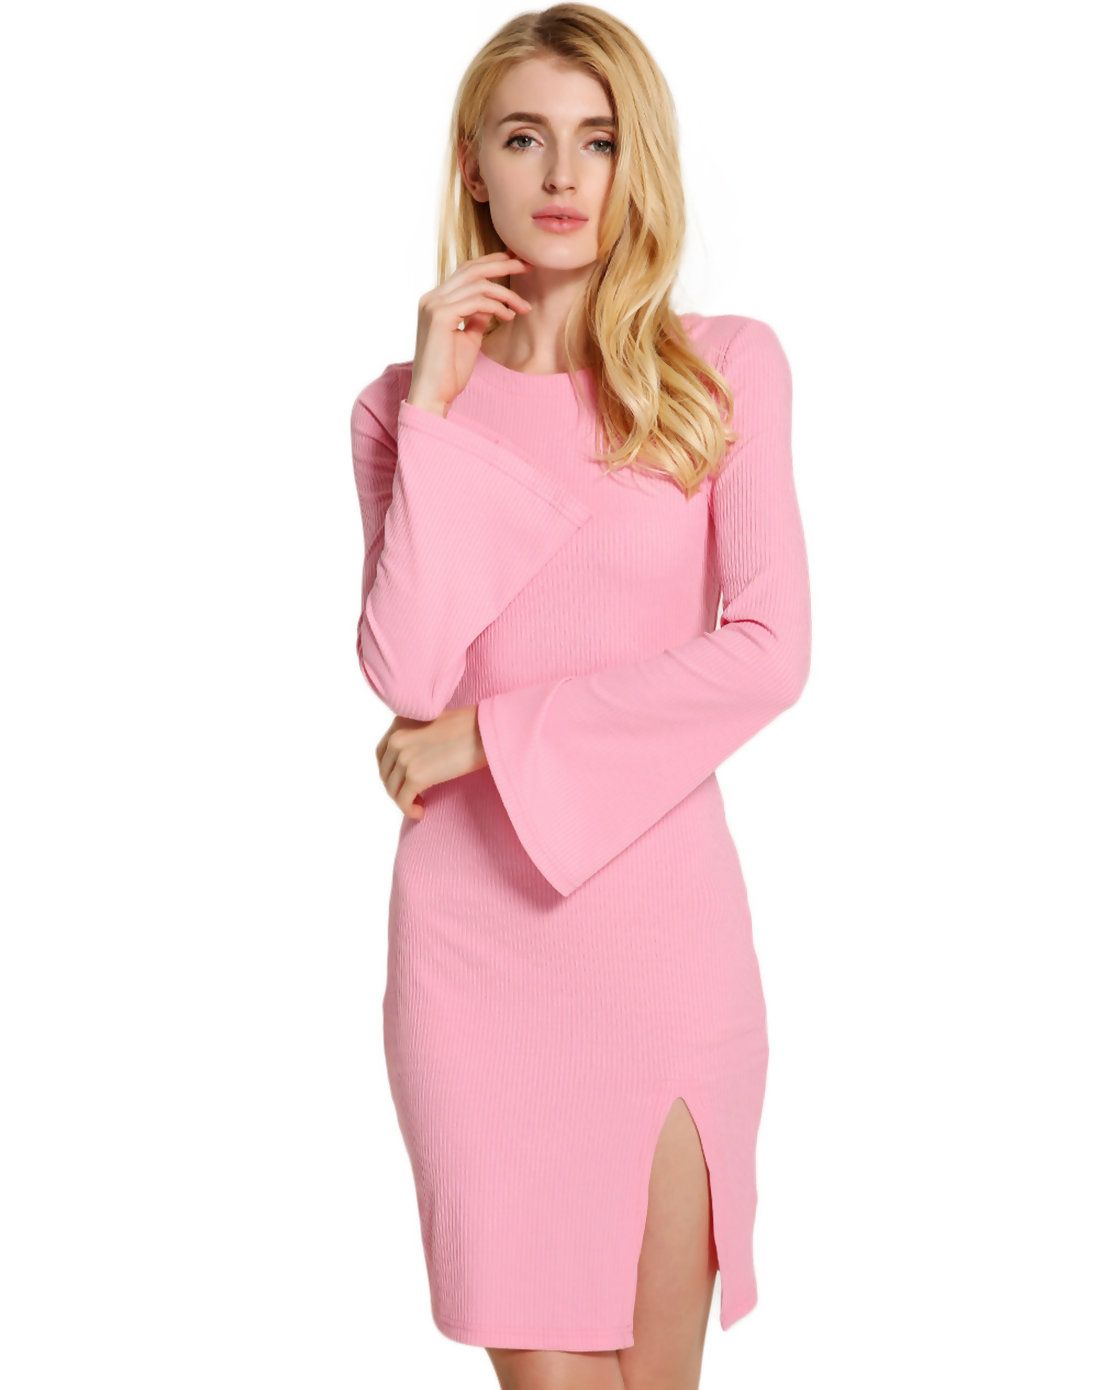 Pink sweater dress outfit  Fuchsia Bell Sleeve Bodycon Bandage Slit Sweater Dress